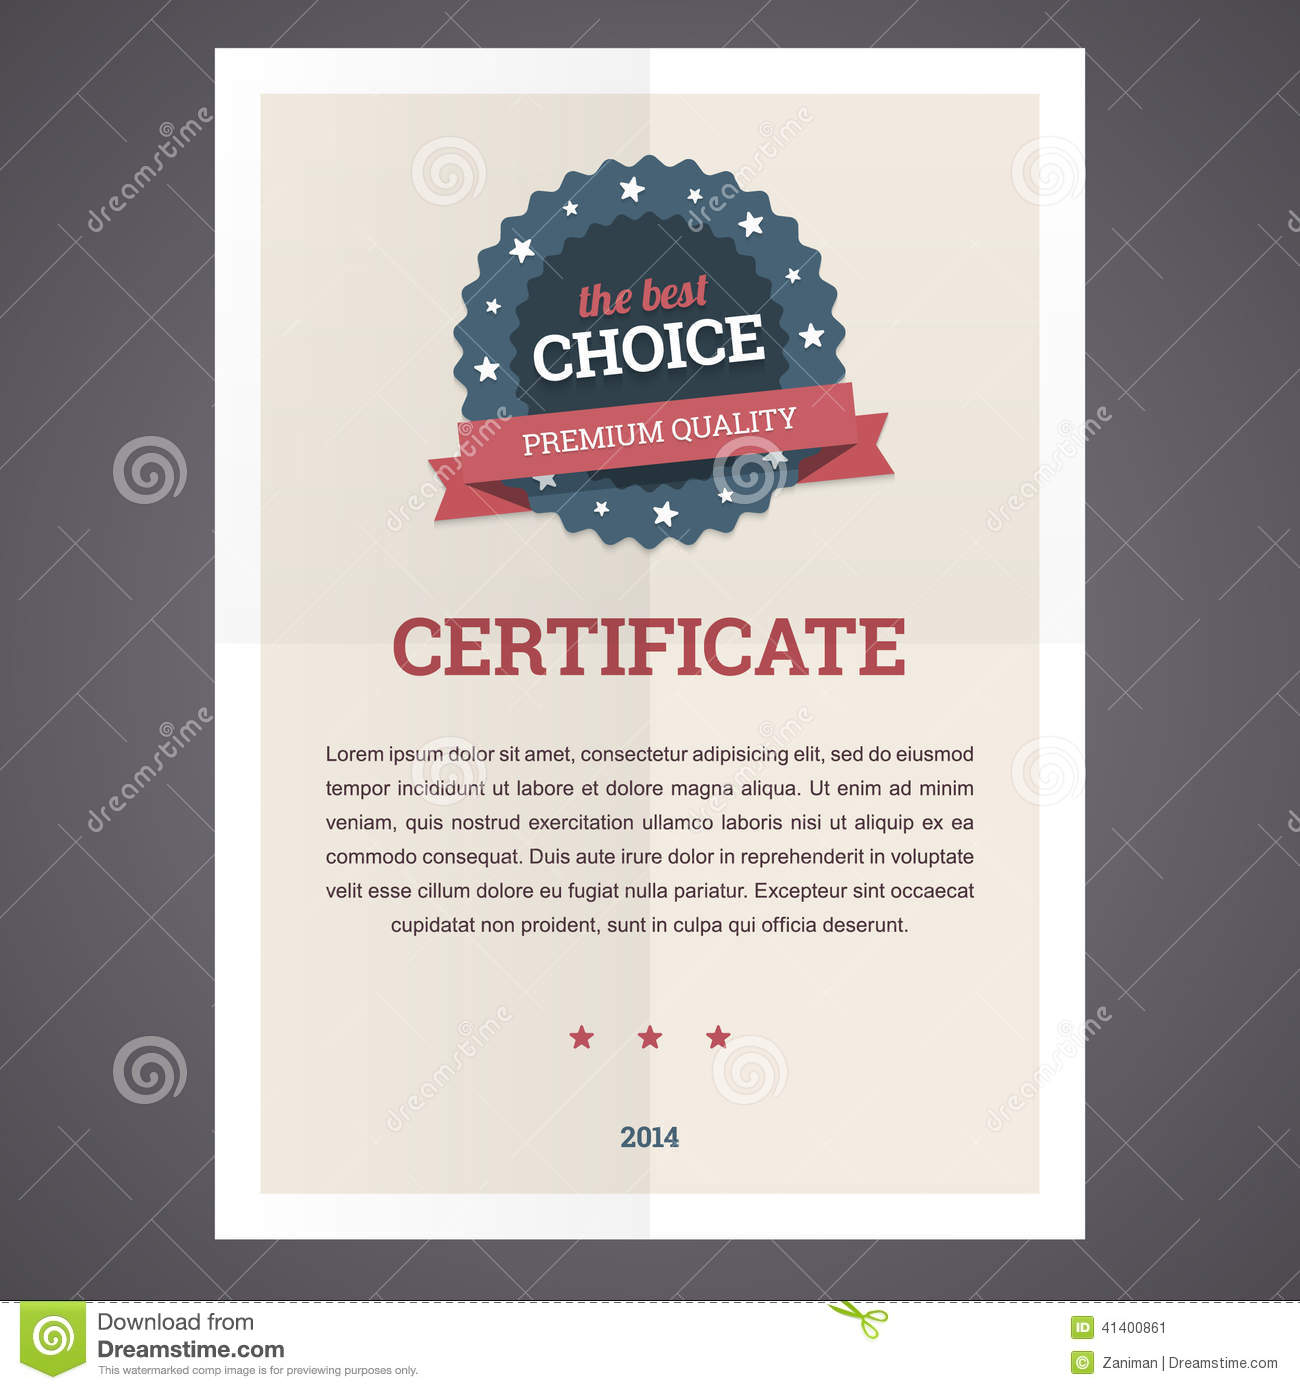 Best Choice Certificate Template. Stock Vector - Image ...